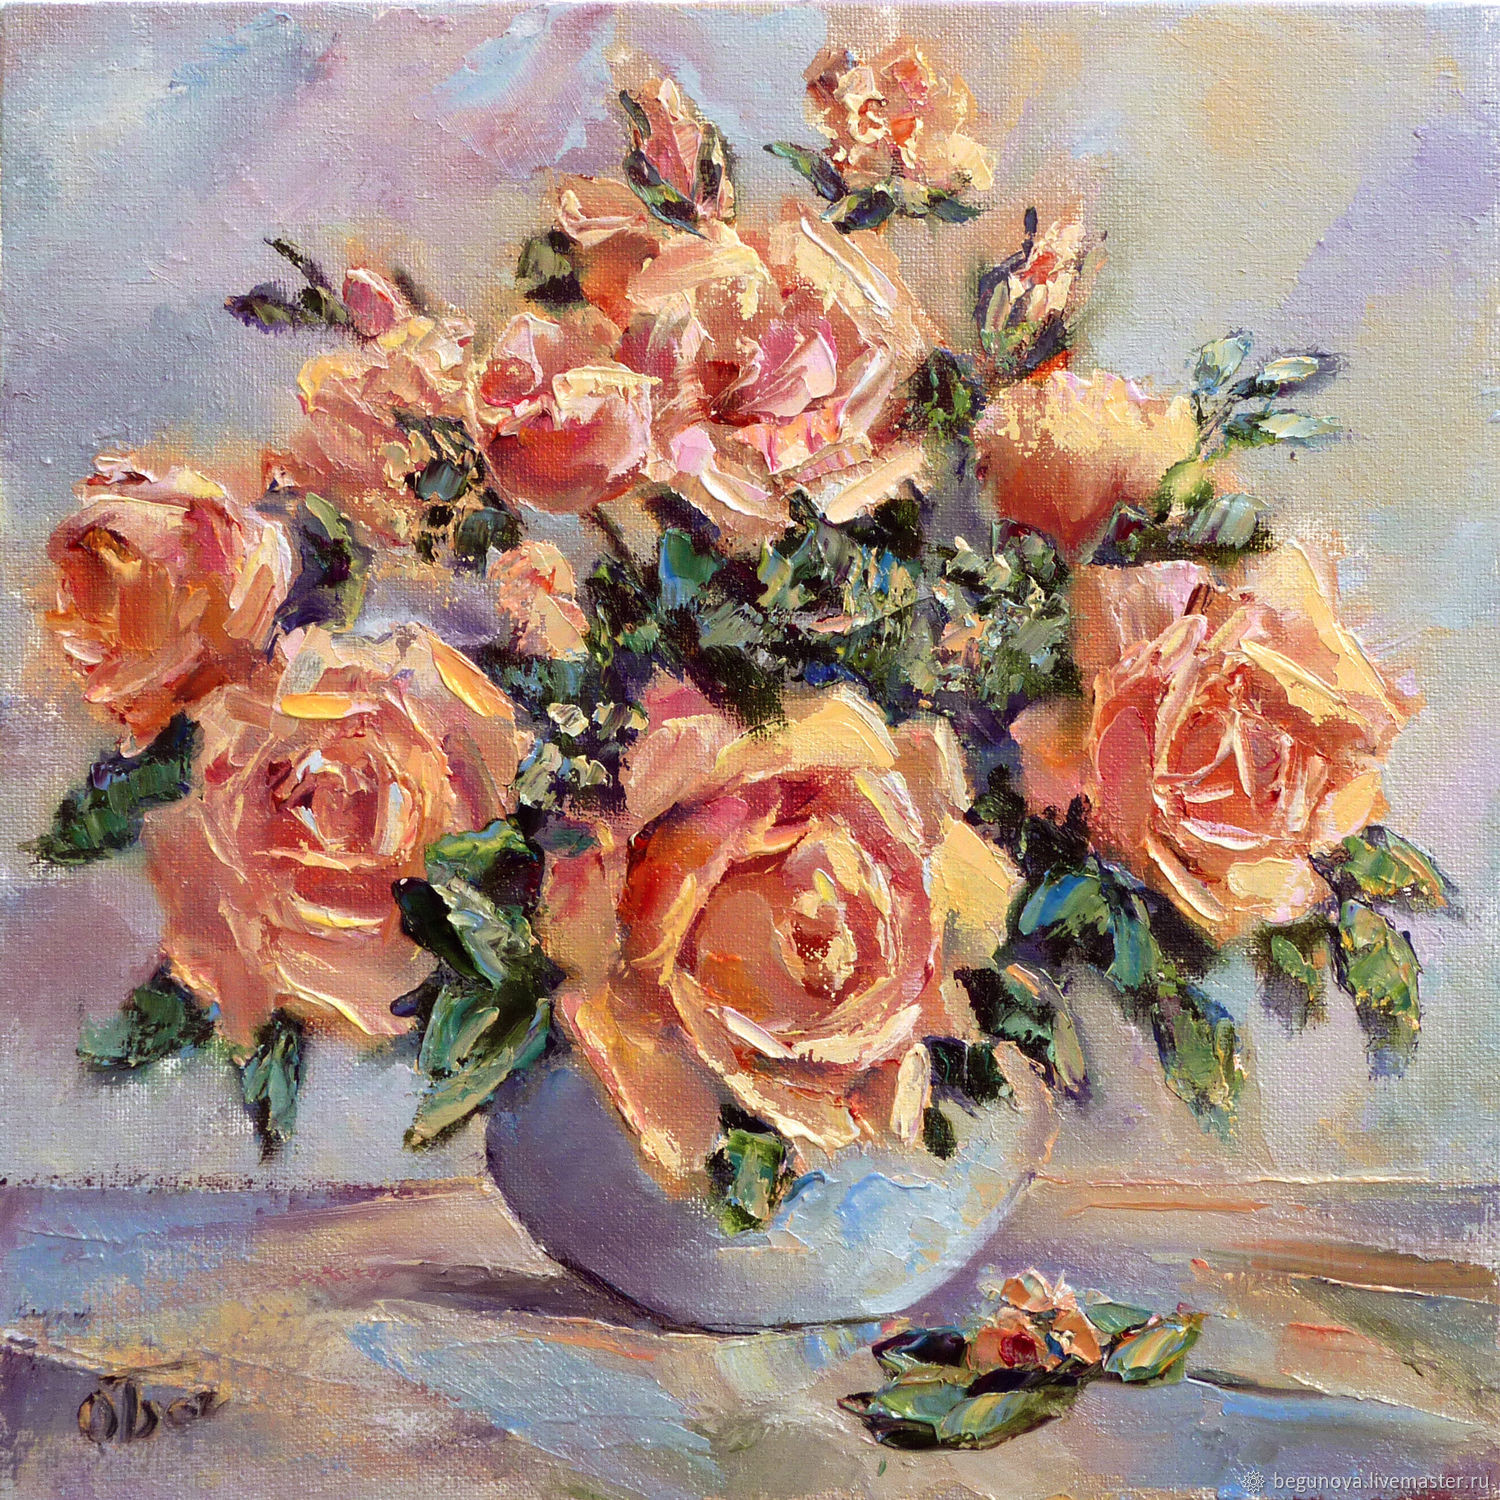 oil paintings of flowers in a vase of oil painting flowers roses painting the roses enjoy the picture with flower paintings handmade livemaster handmade buy oil painting flowers roses painting the